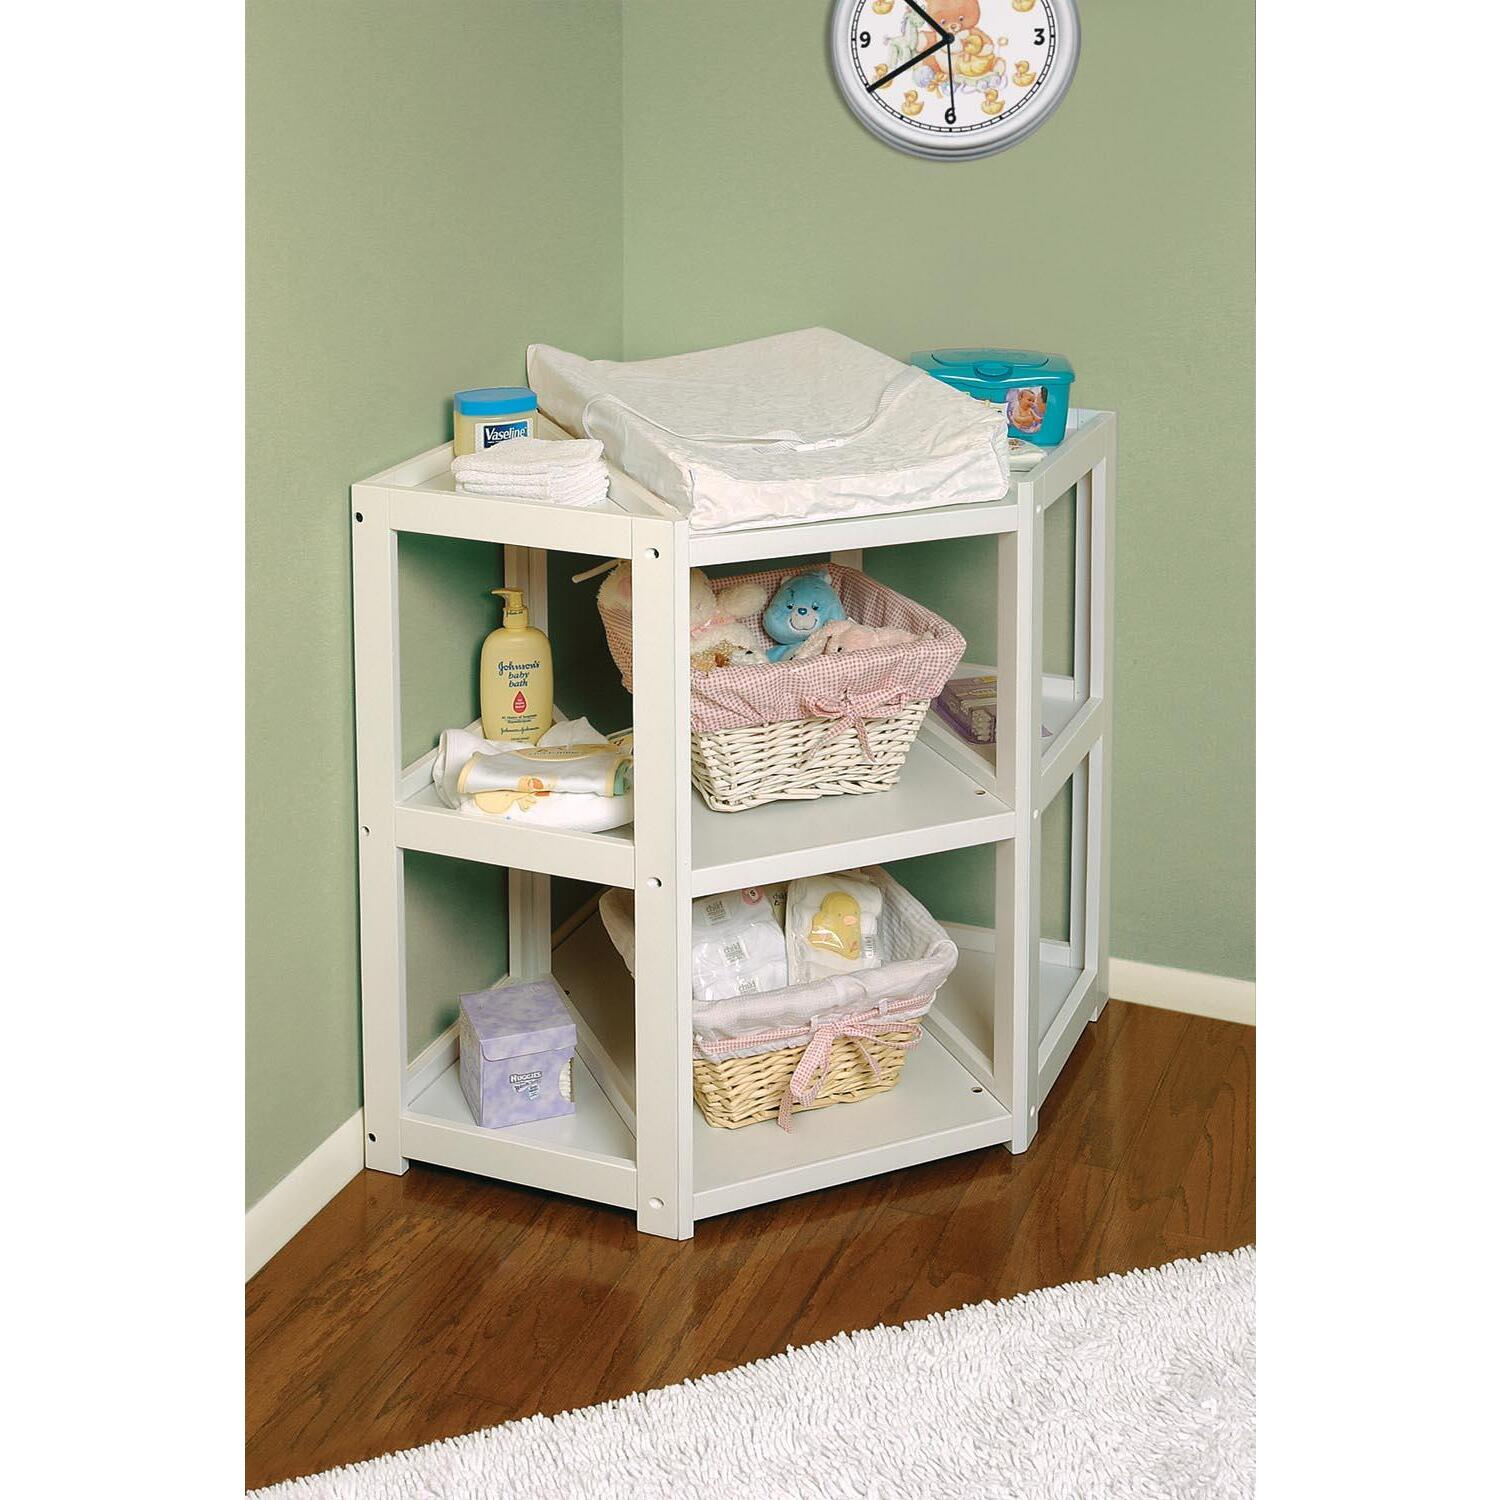 b8e5f2de7a1 Diaper Corner Changing Table - From  258.99 to  262.99